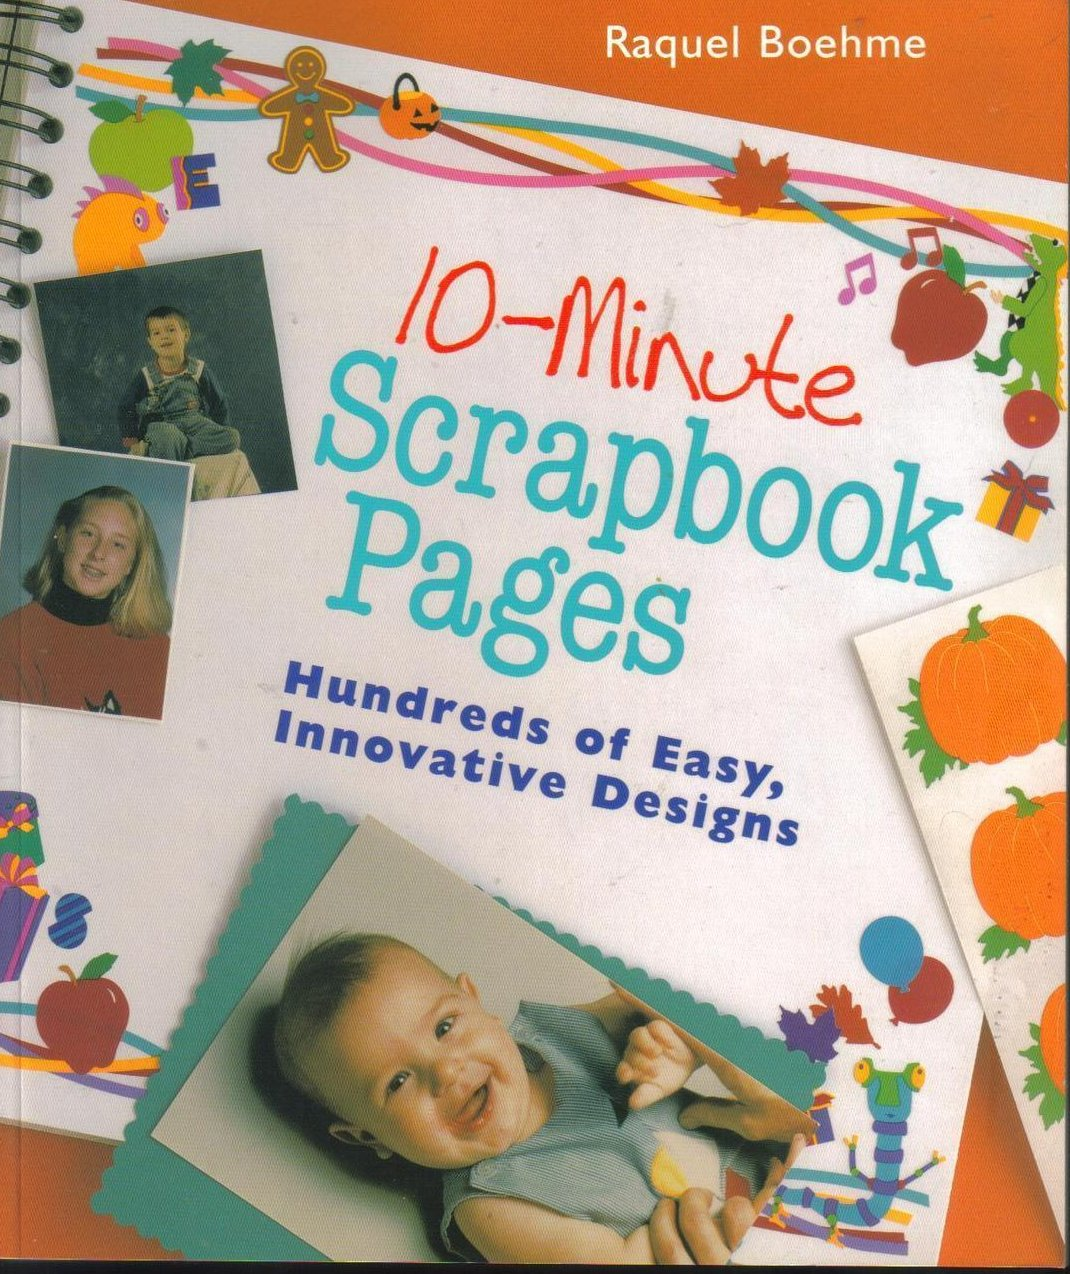 10 Minute Scrapbook Pages 100's of Easy, Innovative Designs